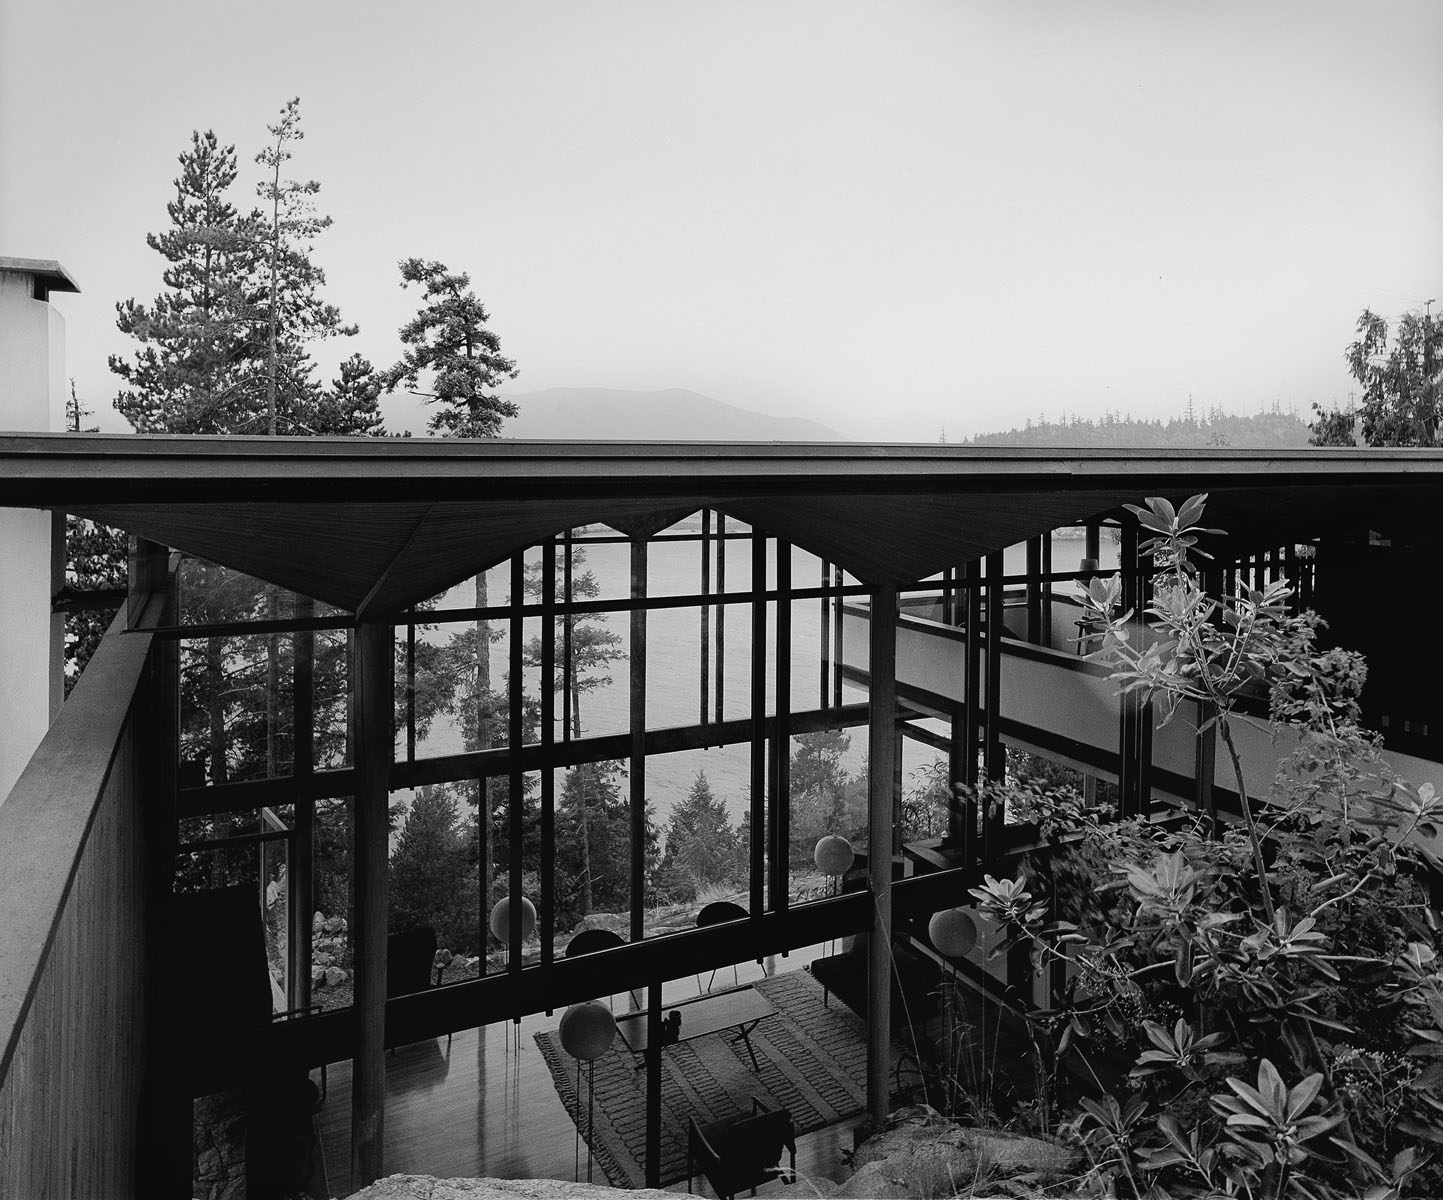 Beaton Residence, West Vancouver Arthur Müdry, Architect, 1965 Photograph by Selwyn Pullan, 1965 Courtesy of West Vancouver Museum.